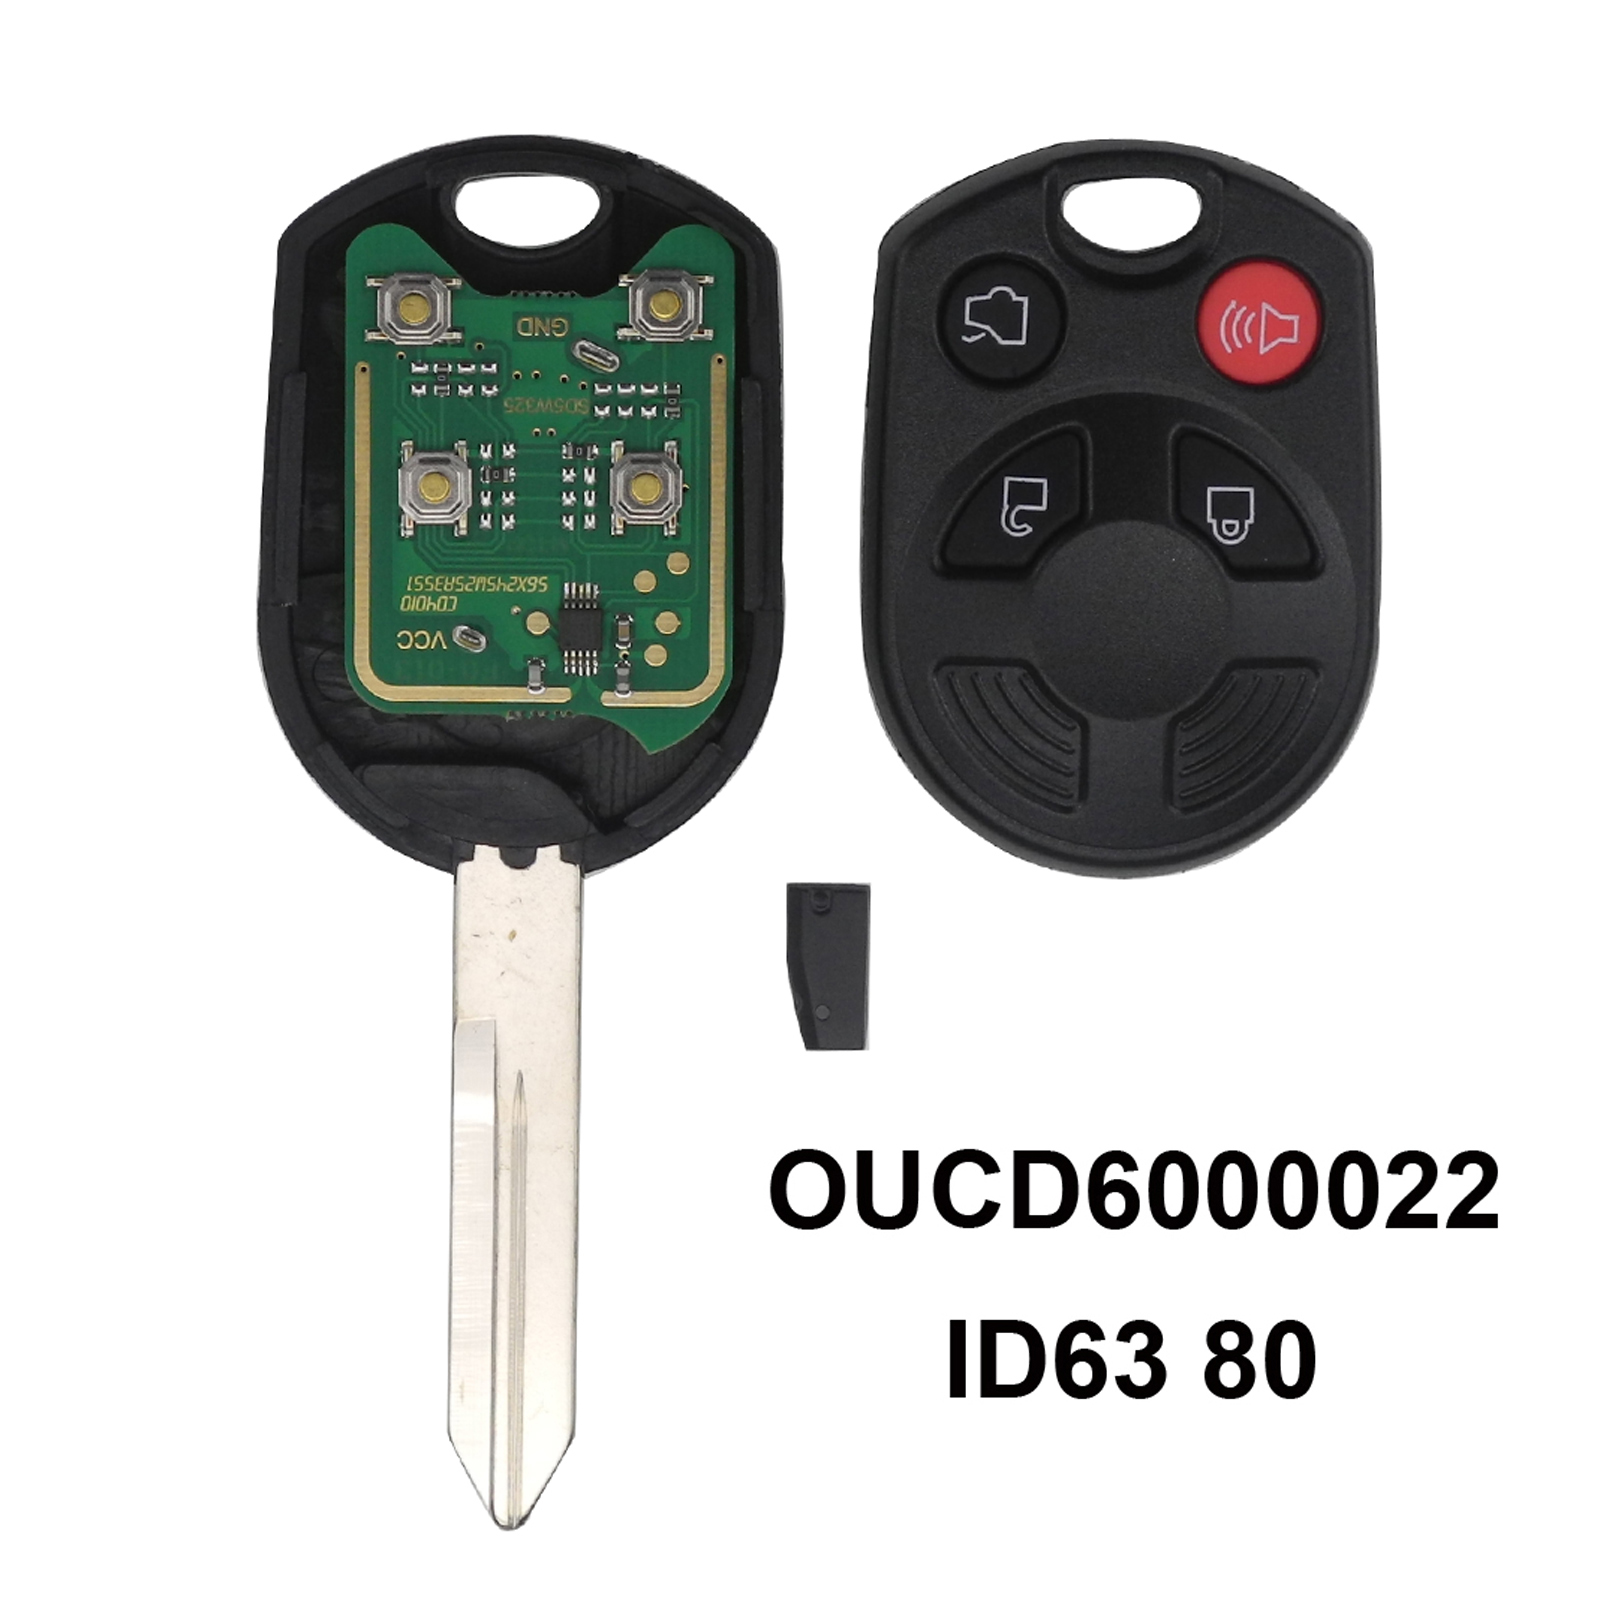 4 Buttons Complete Car Key Remote for Ford Escape Keyless Shell Entry Combo FOB Remote OUCD6000022 With ID63 Chip 80 2003 03 ford taurus pink keyless entry remote 4 button